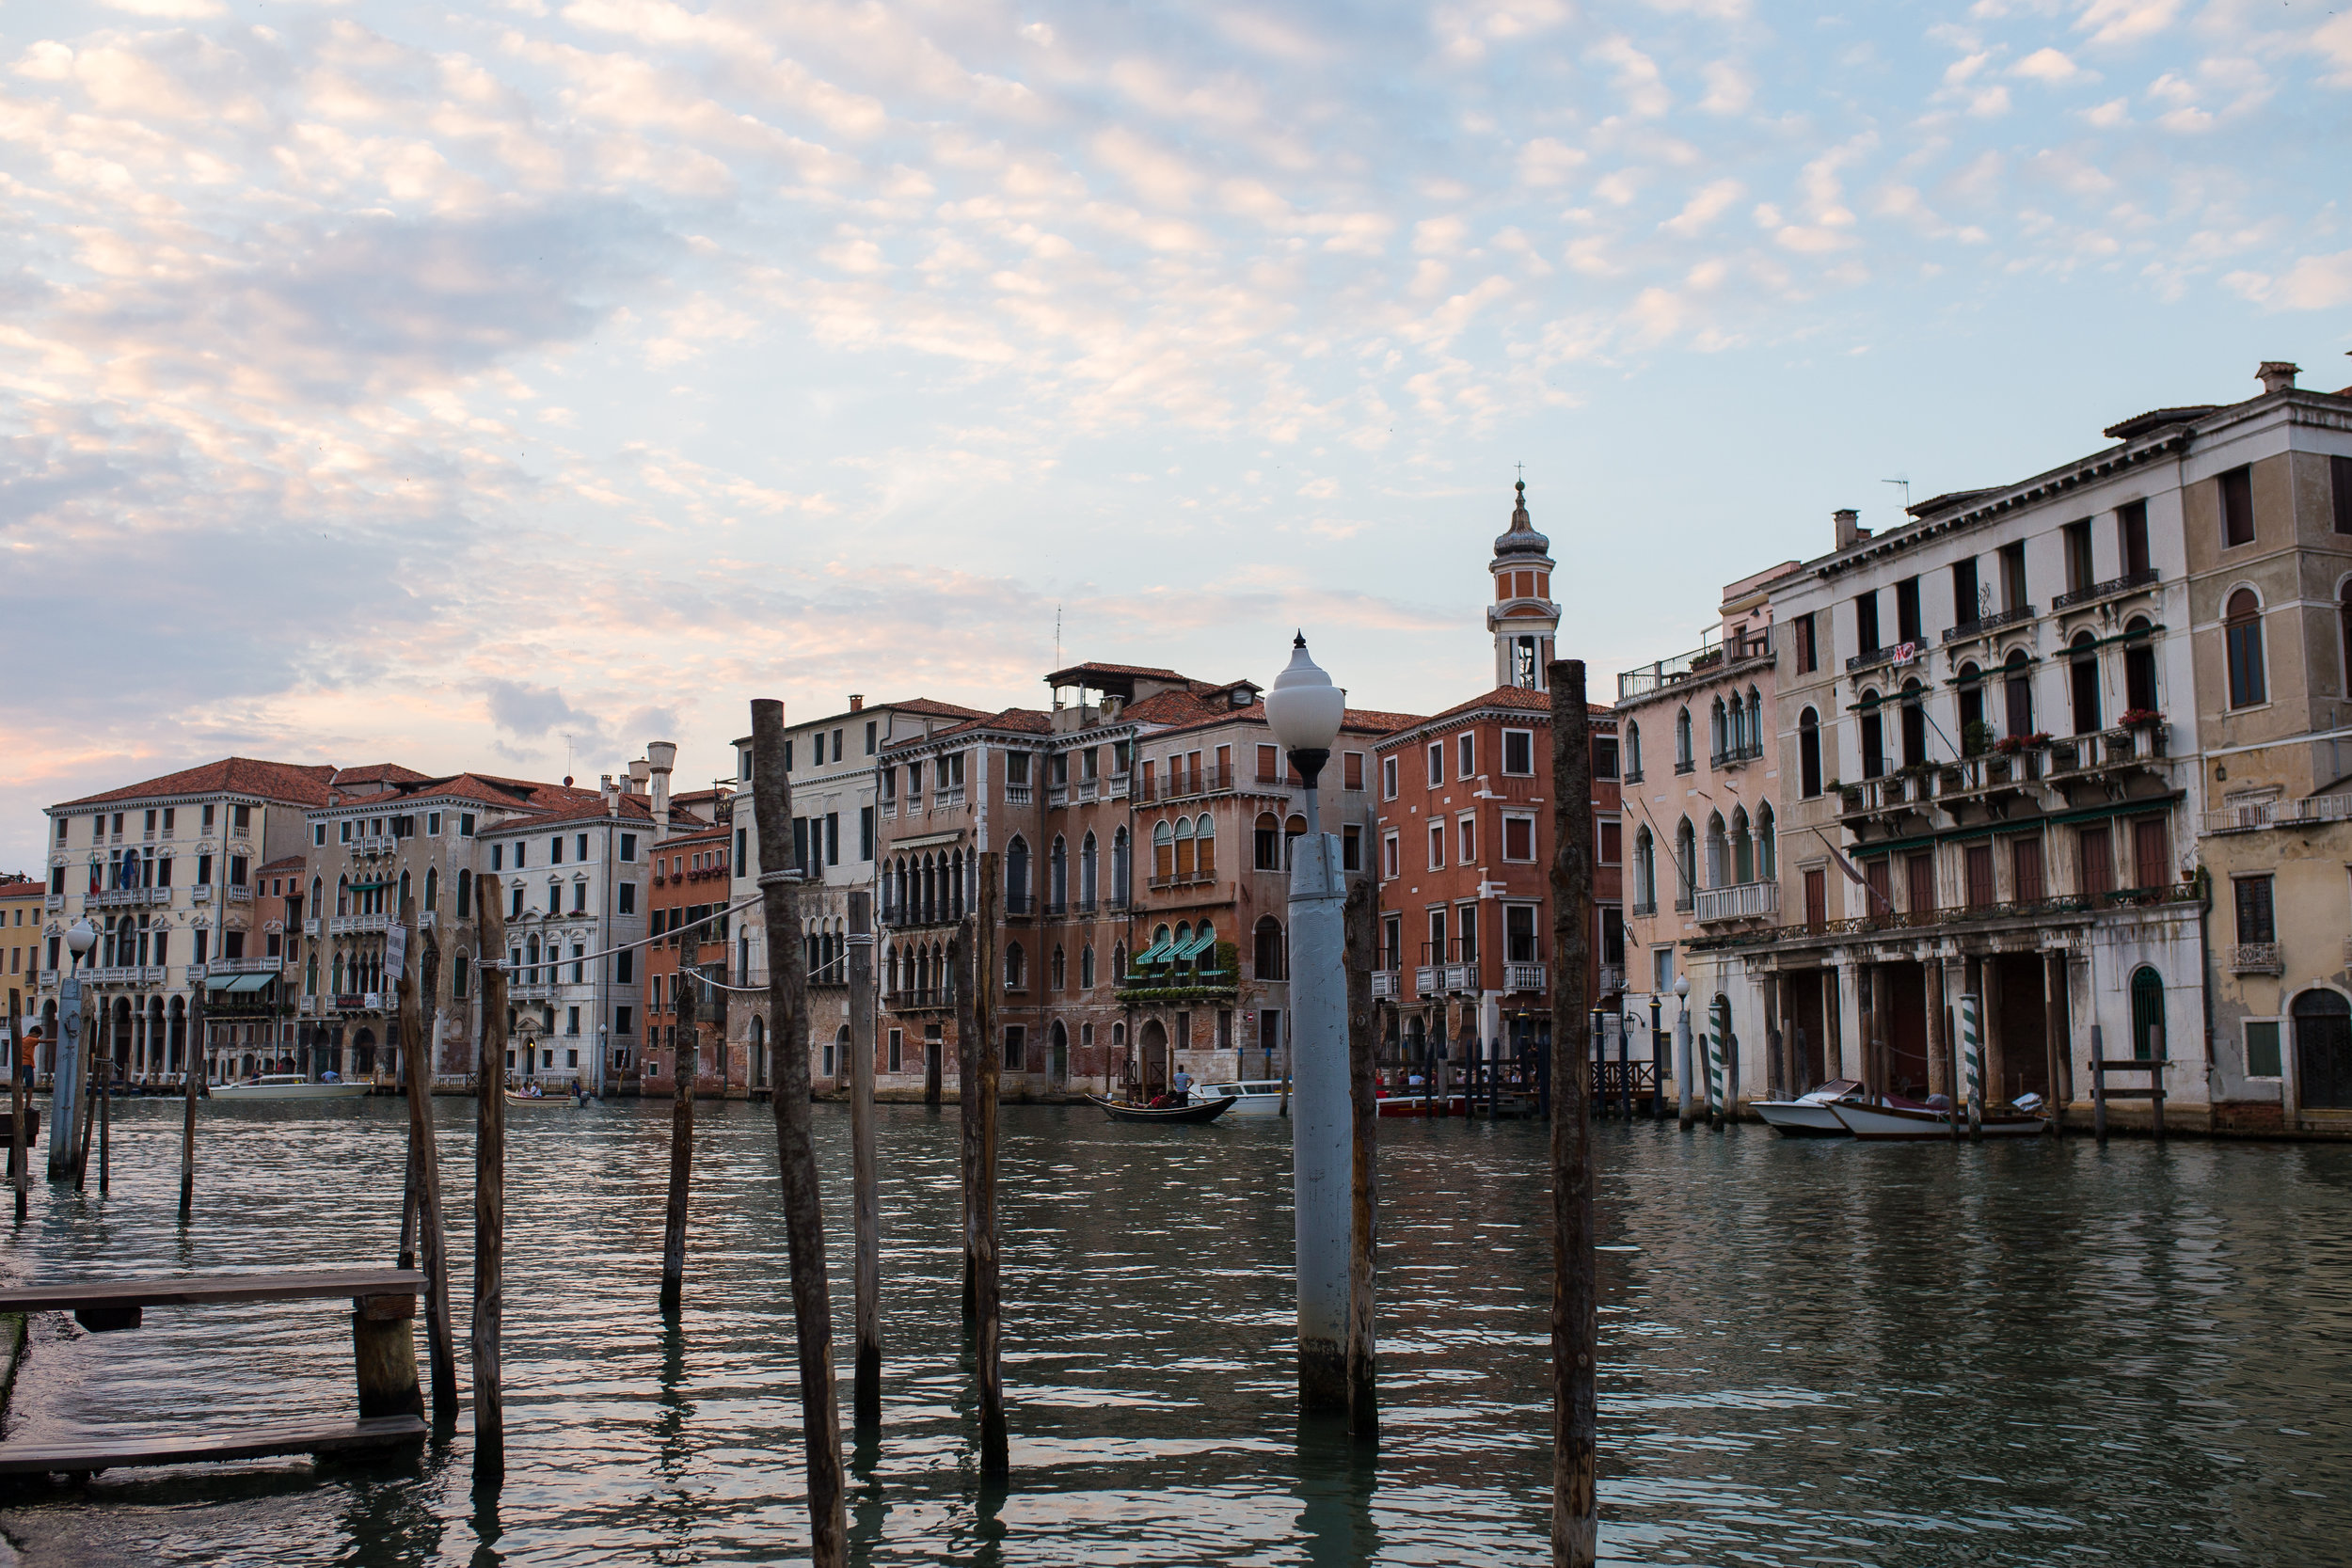 The Grand Canal, from the sidewalk just below the Rialto Bridge